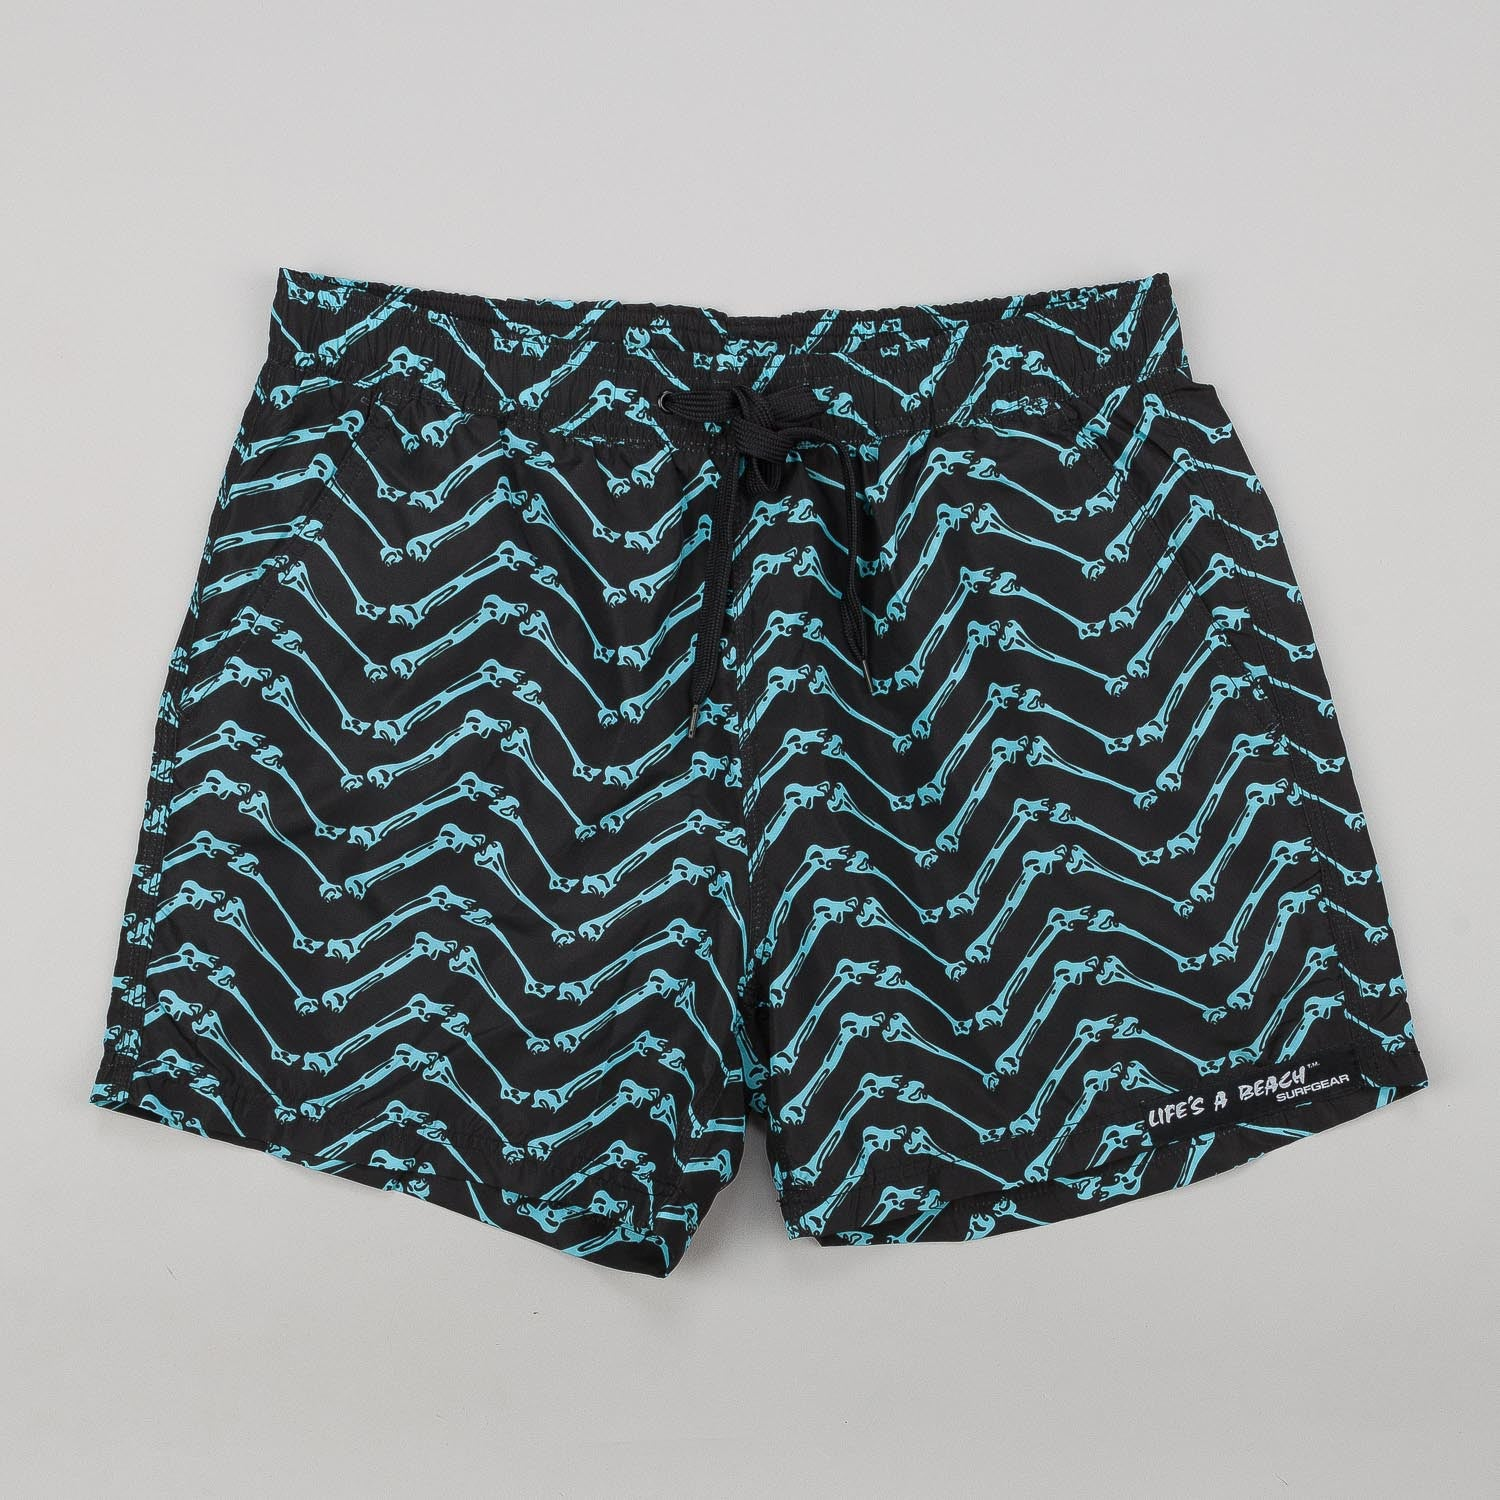 Life's A Beach Bones Board Shorts - Turquoise